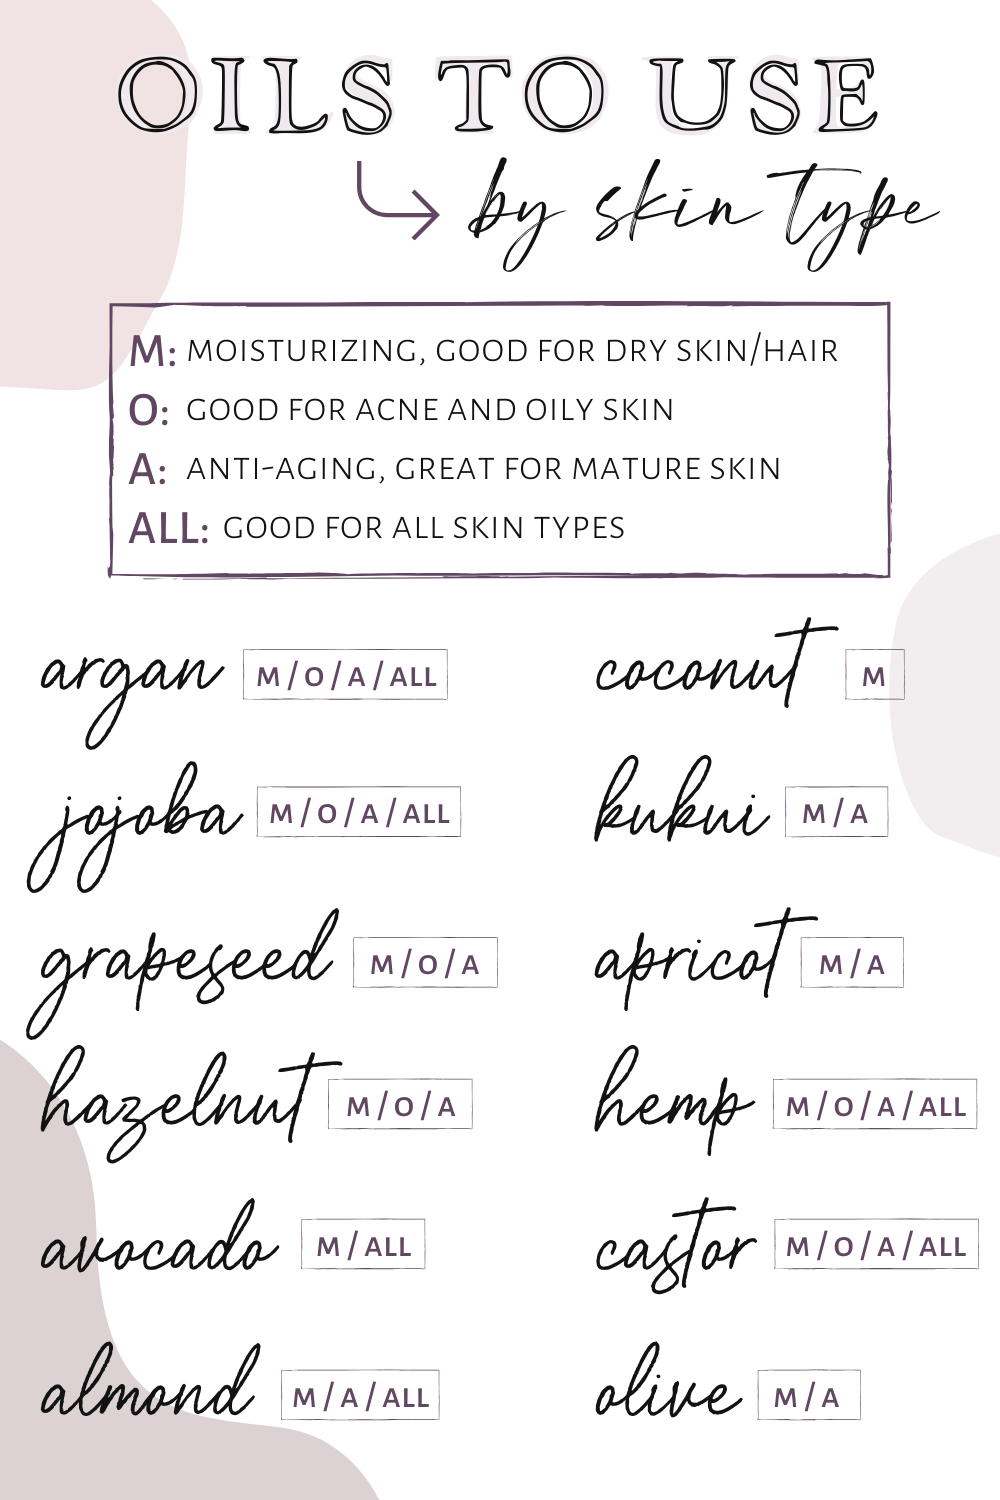 The best oils to use for your skin by skin type